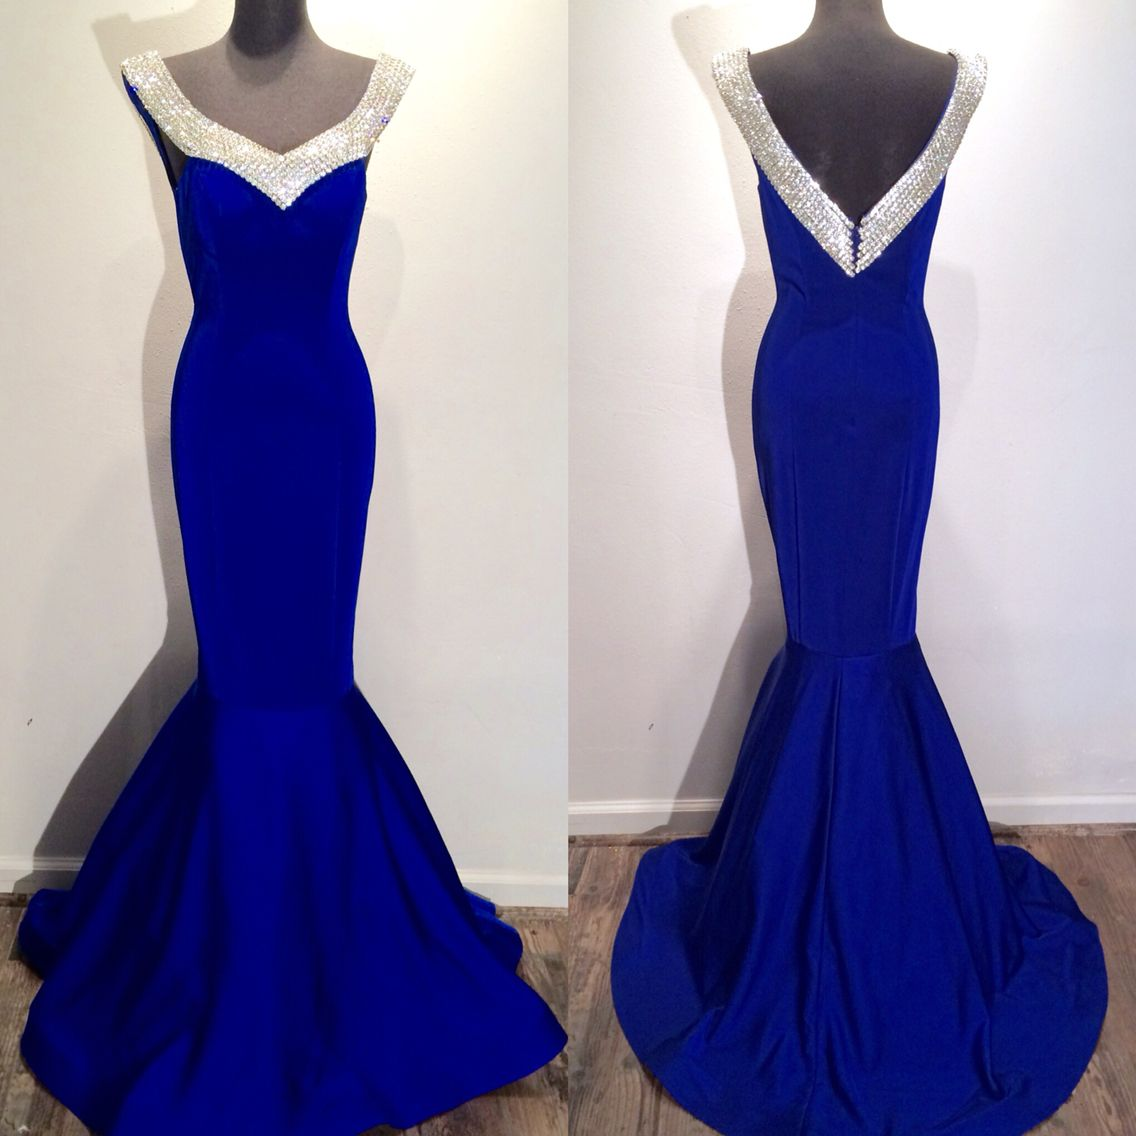 new from jovani. yay or nay? let us know your thoughts below